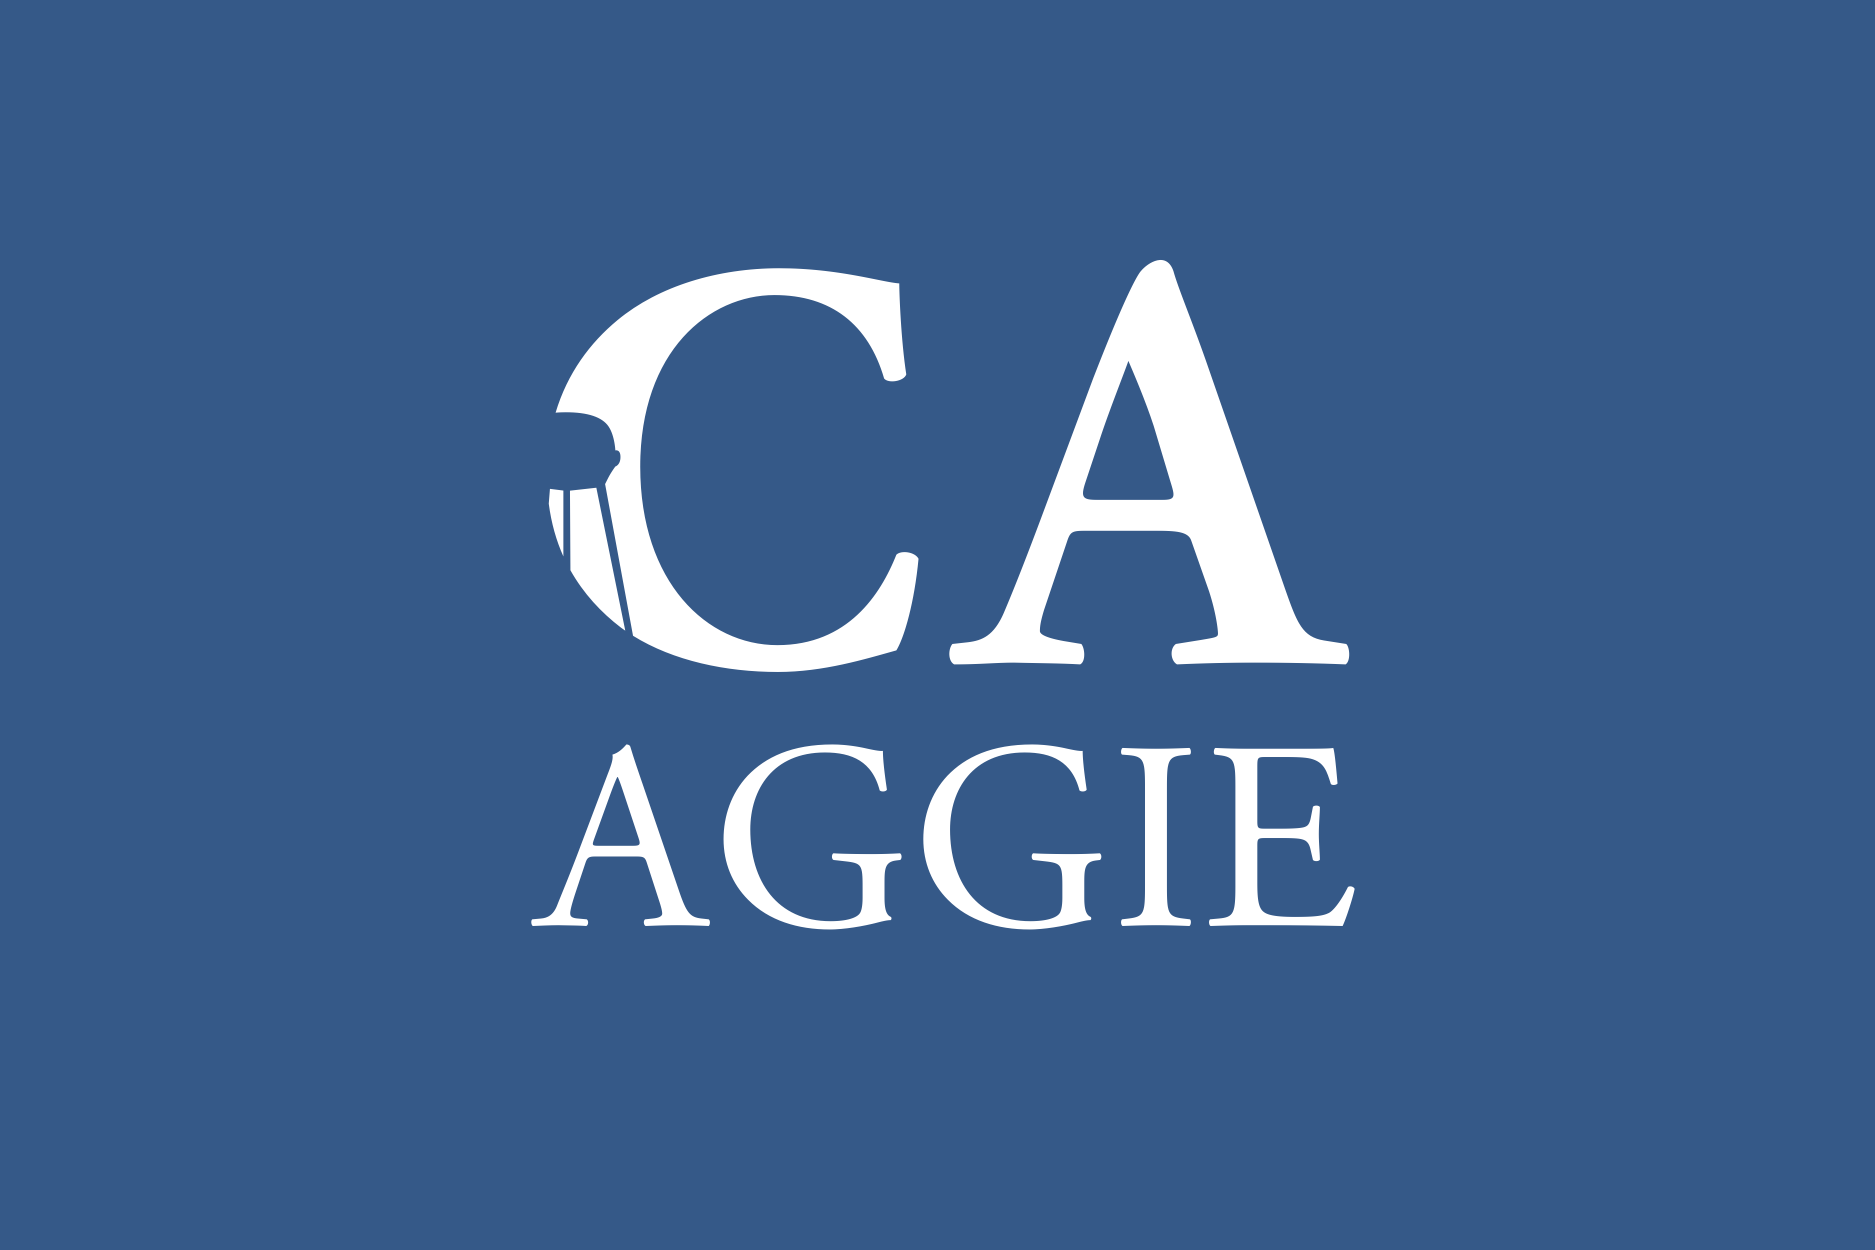 Humor: To avoid bias, we at The Aggie vow to no longer report on topics we know anything about